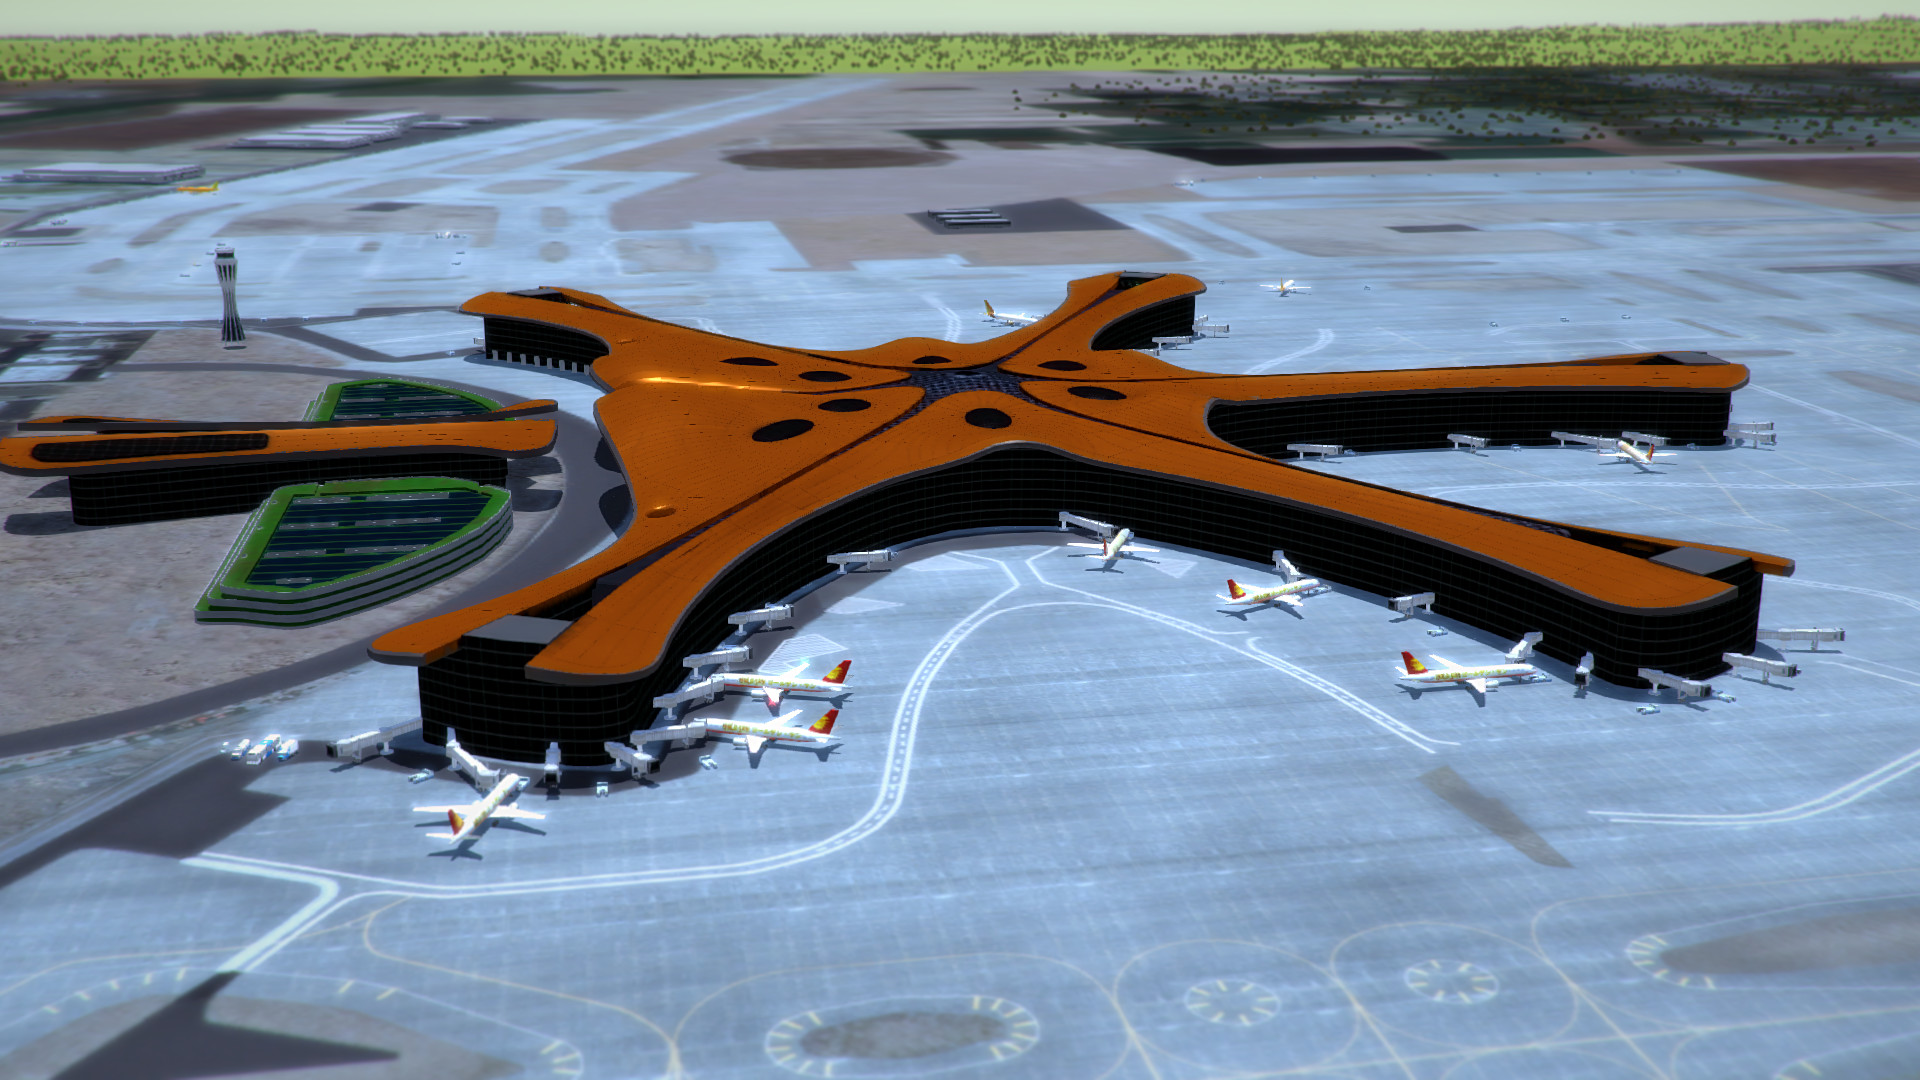 Tower!3D Pro - ZBAD airport screenshot